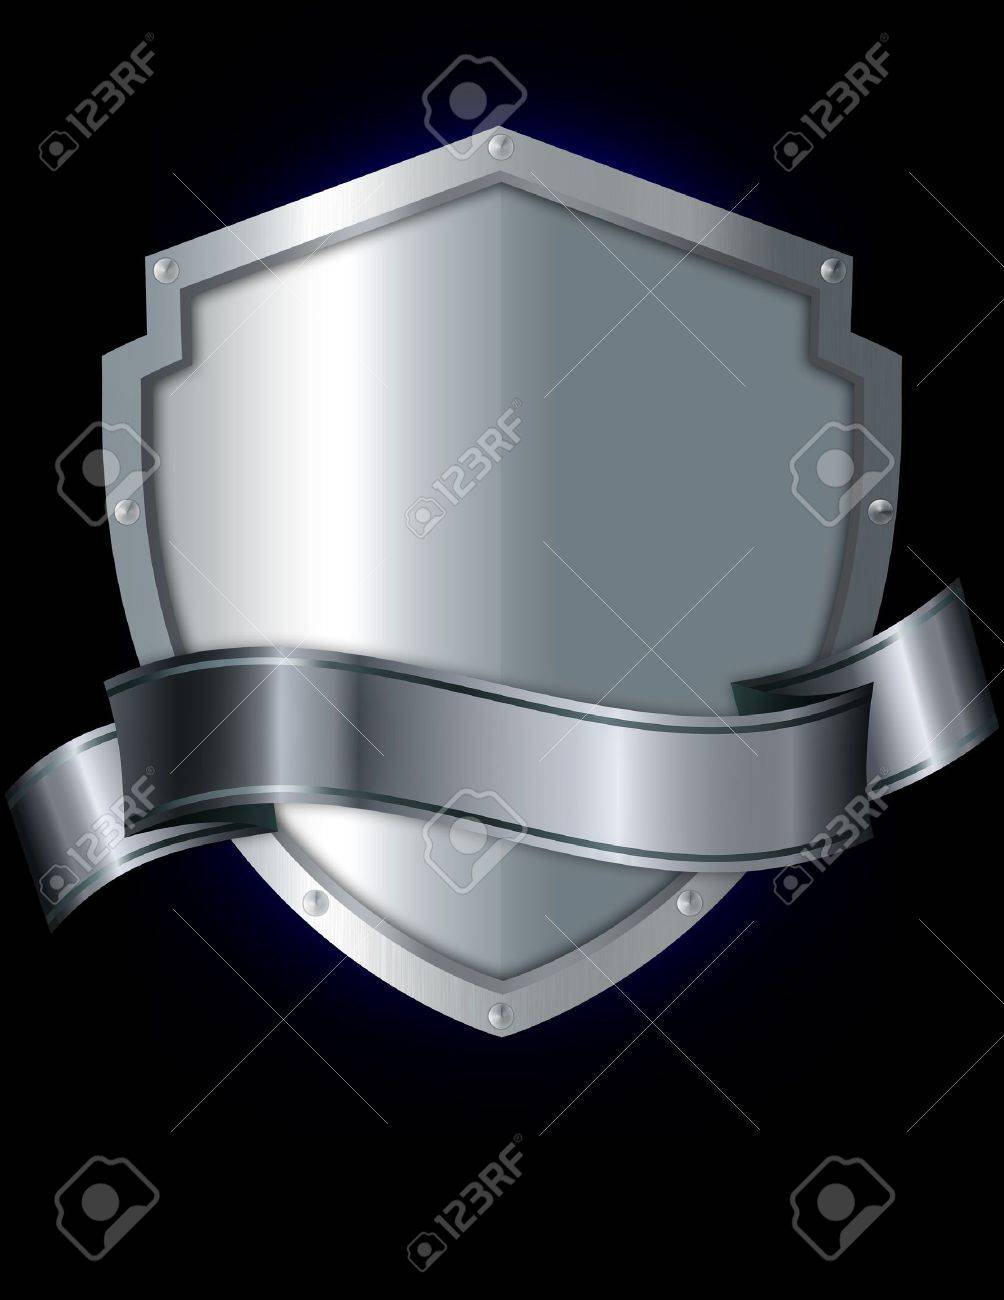 Silver shield and silver ribbon on a black background Stock Photo - 13528559